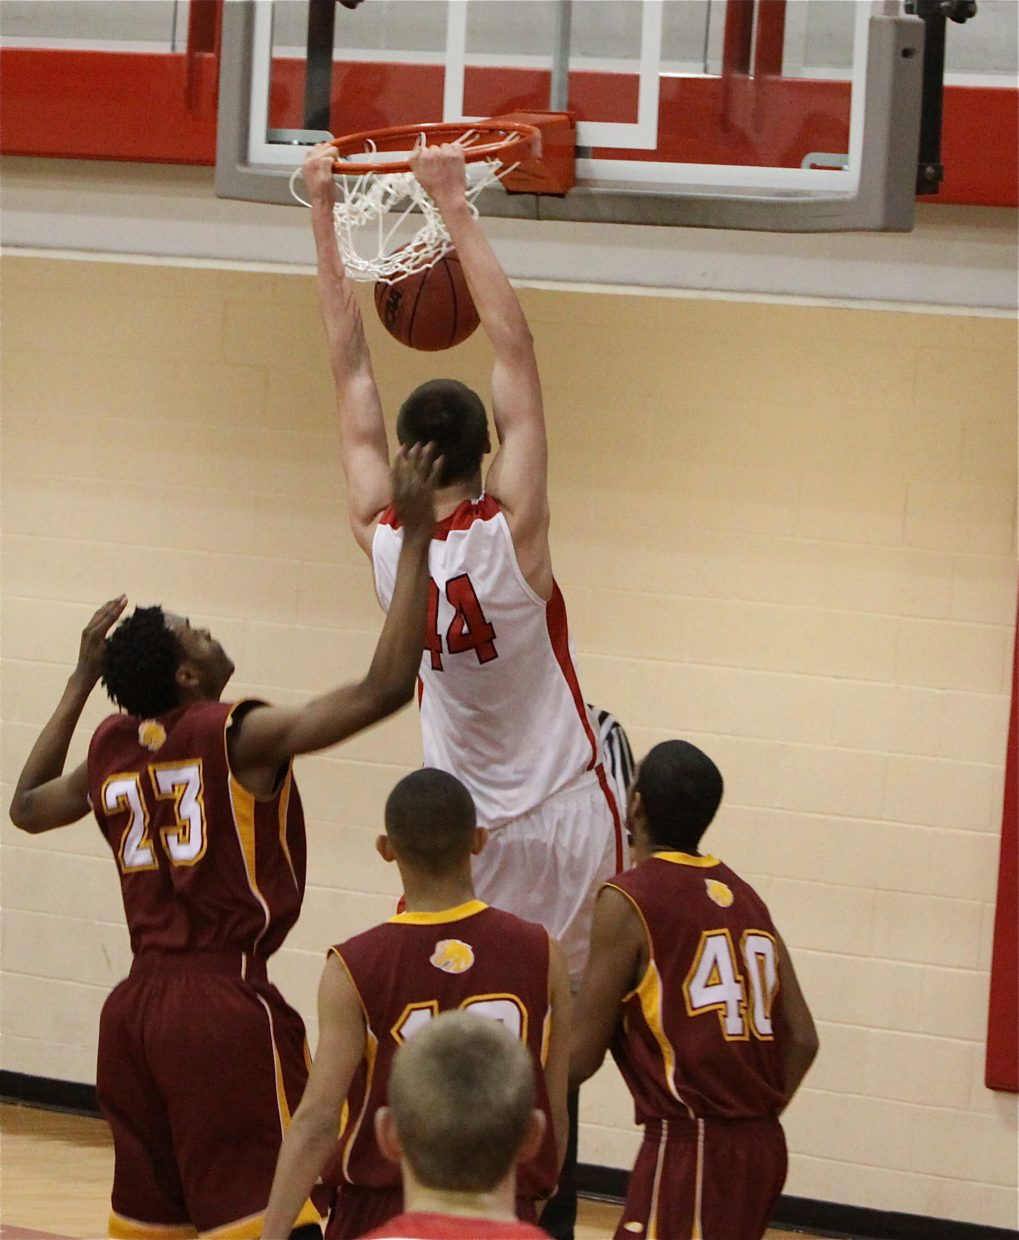 Garrett Bye dunks one at Wednesday's game over Sierra's Michael Jordan. Submitted by: Mark McCaulley